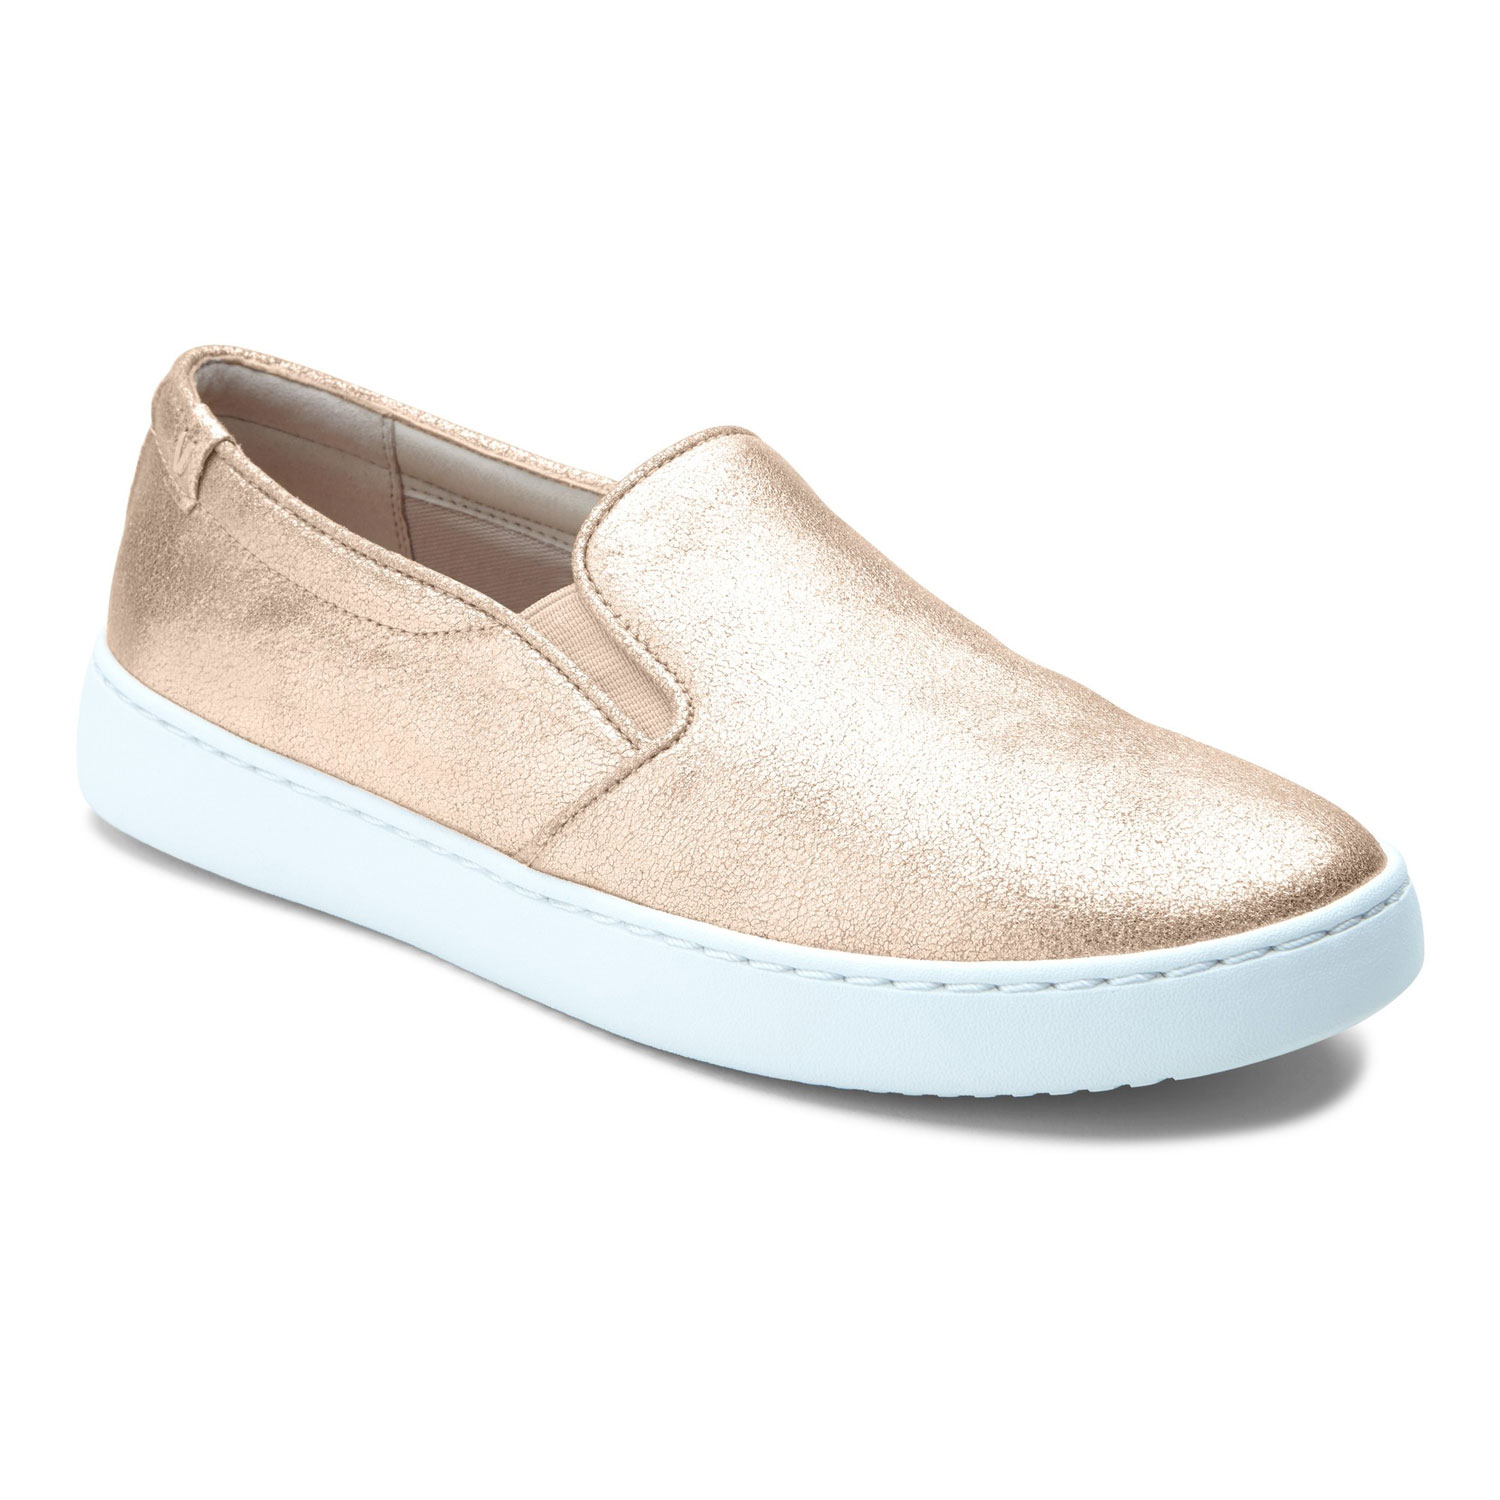 Vionic-Avery-Women-All-Day-Comfort-Work-Shoes-Pro-Metallic-Rose-Gold-CW7455_01